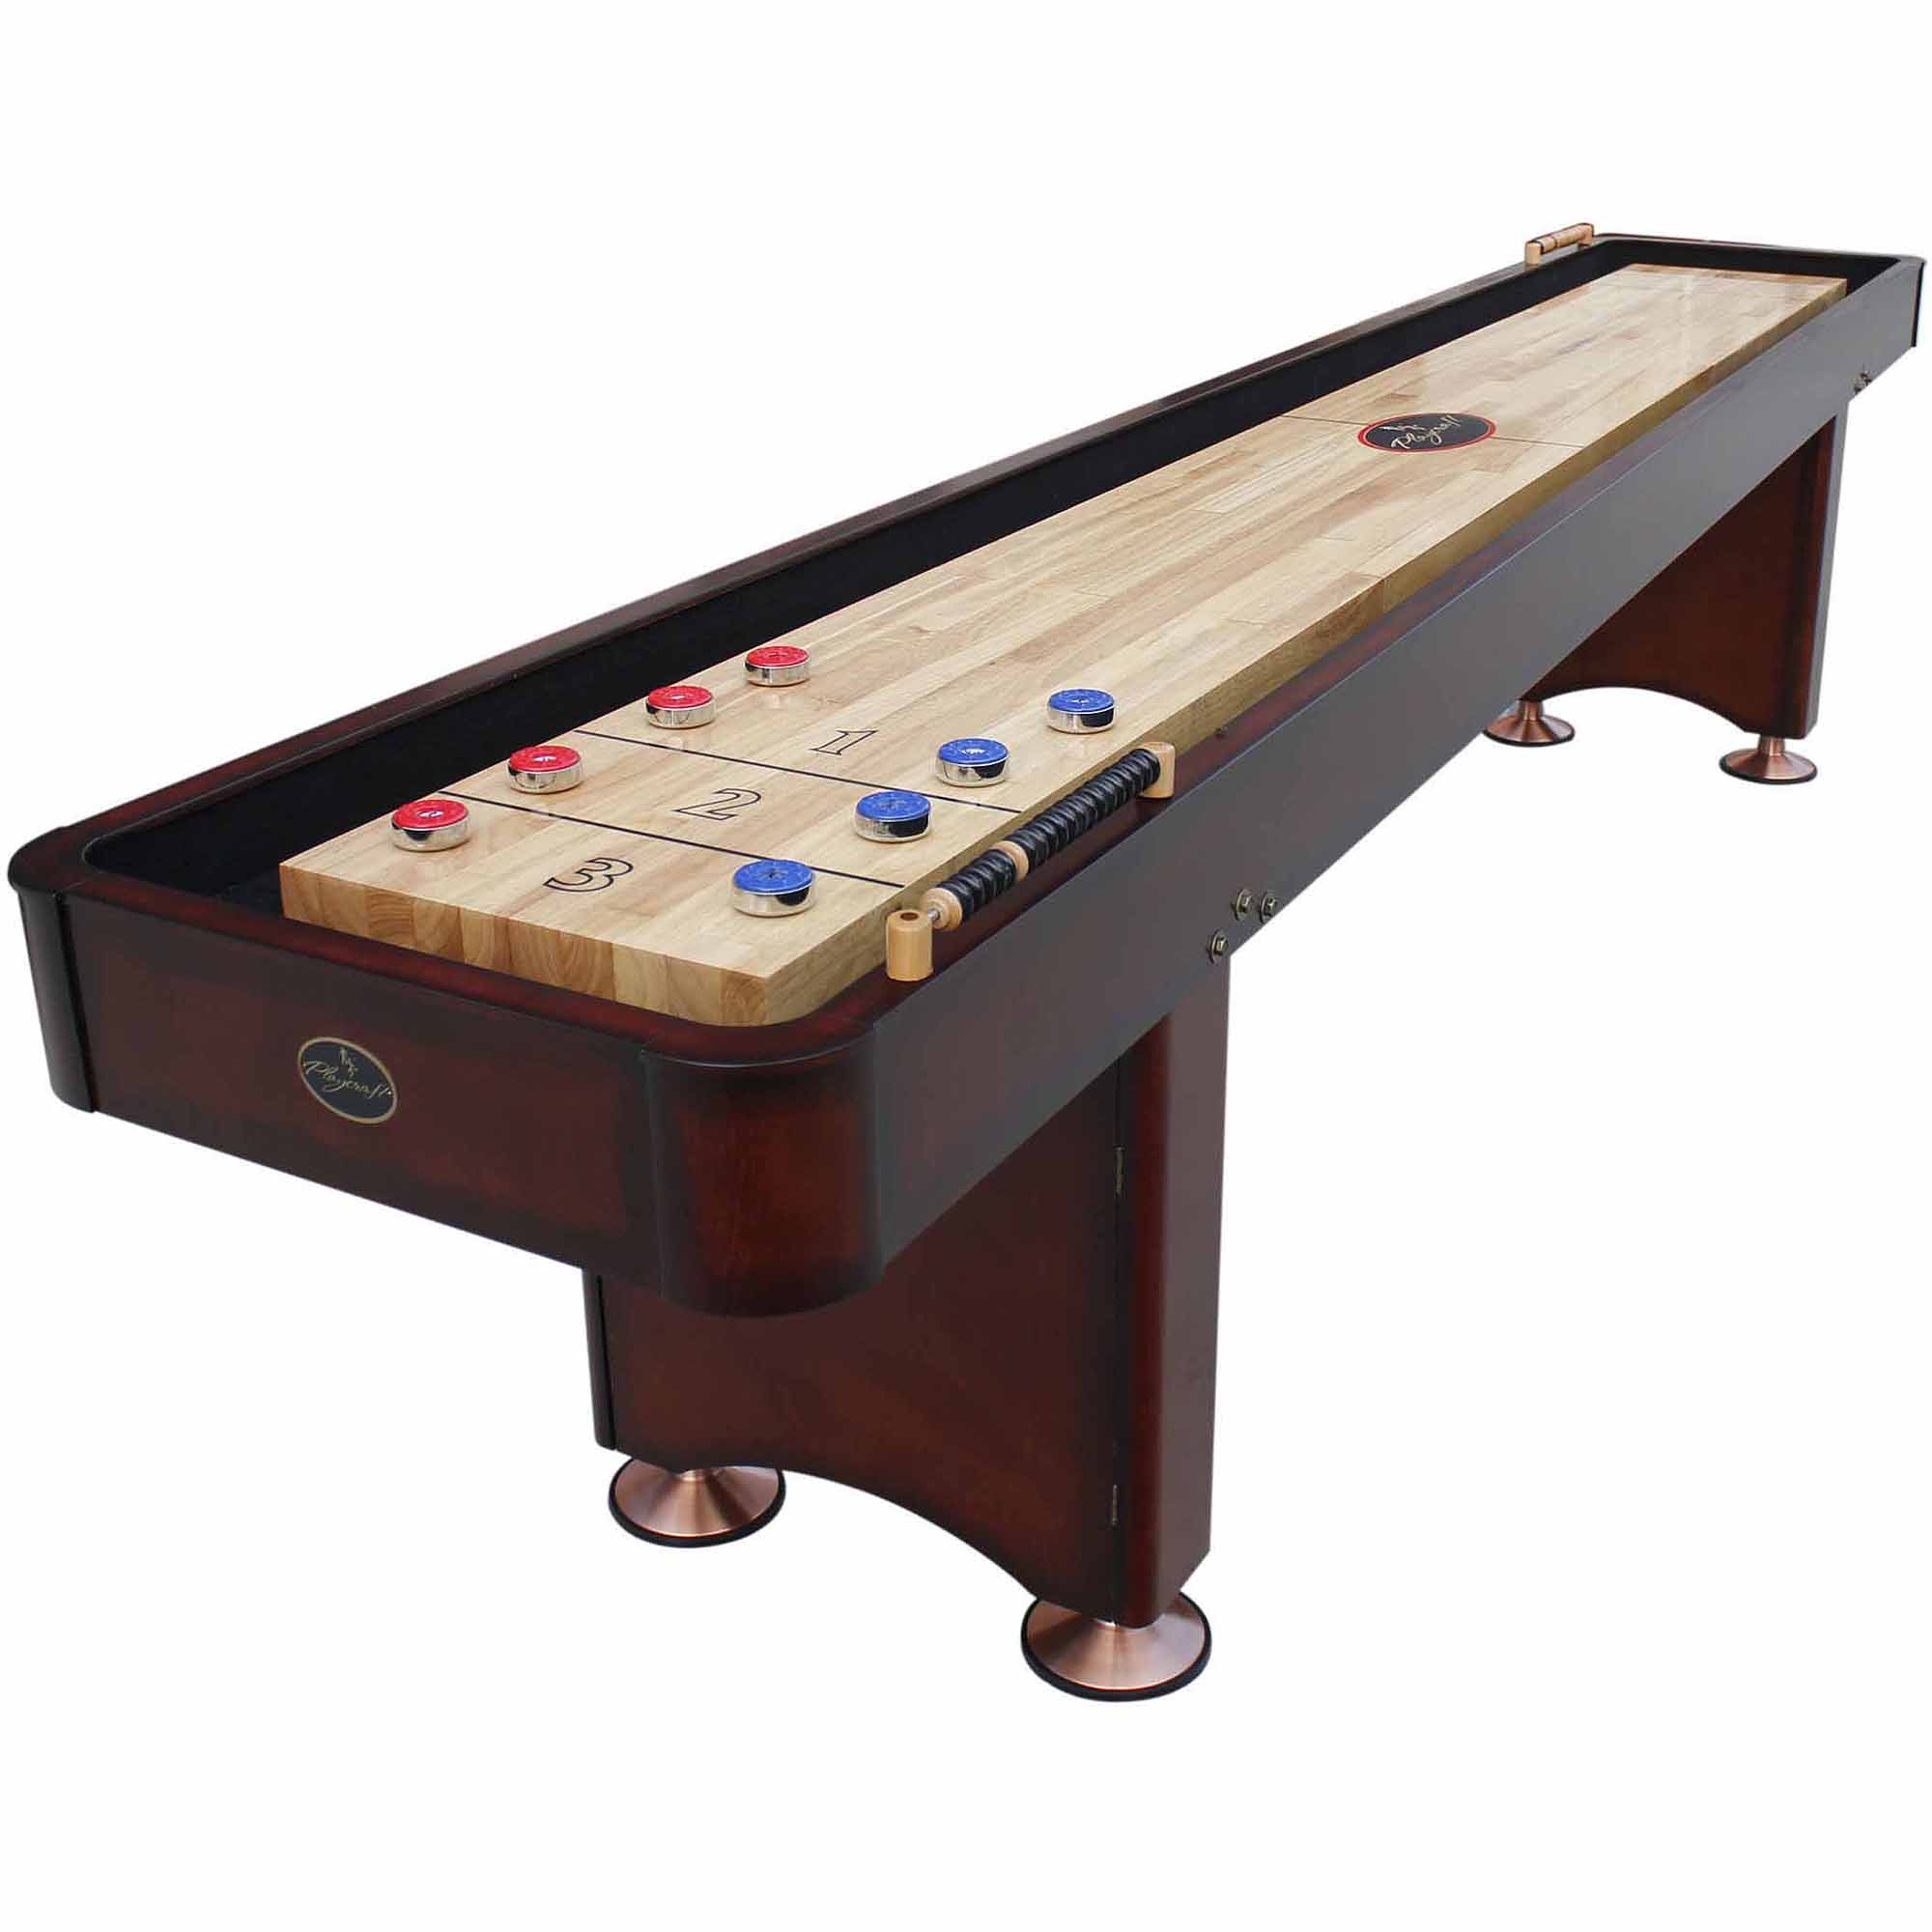 house dining pin room board pinterest plans shuffleboard shuffle table